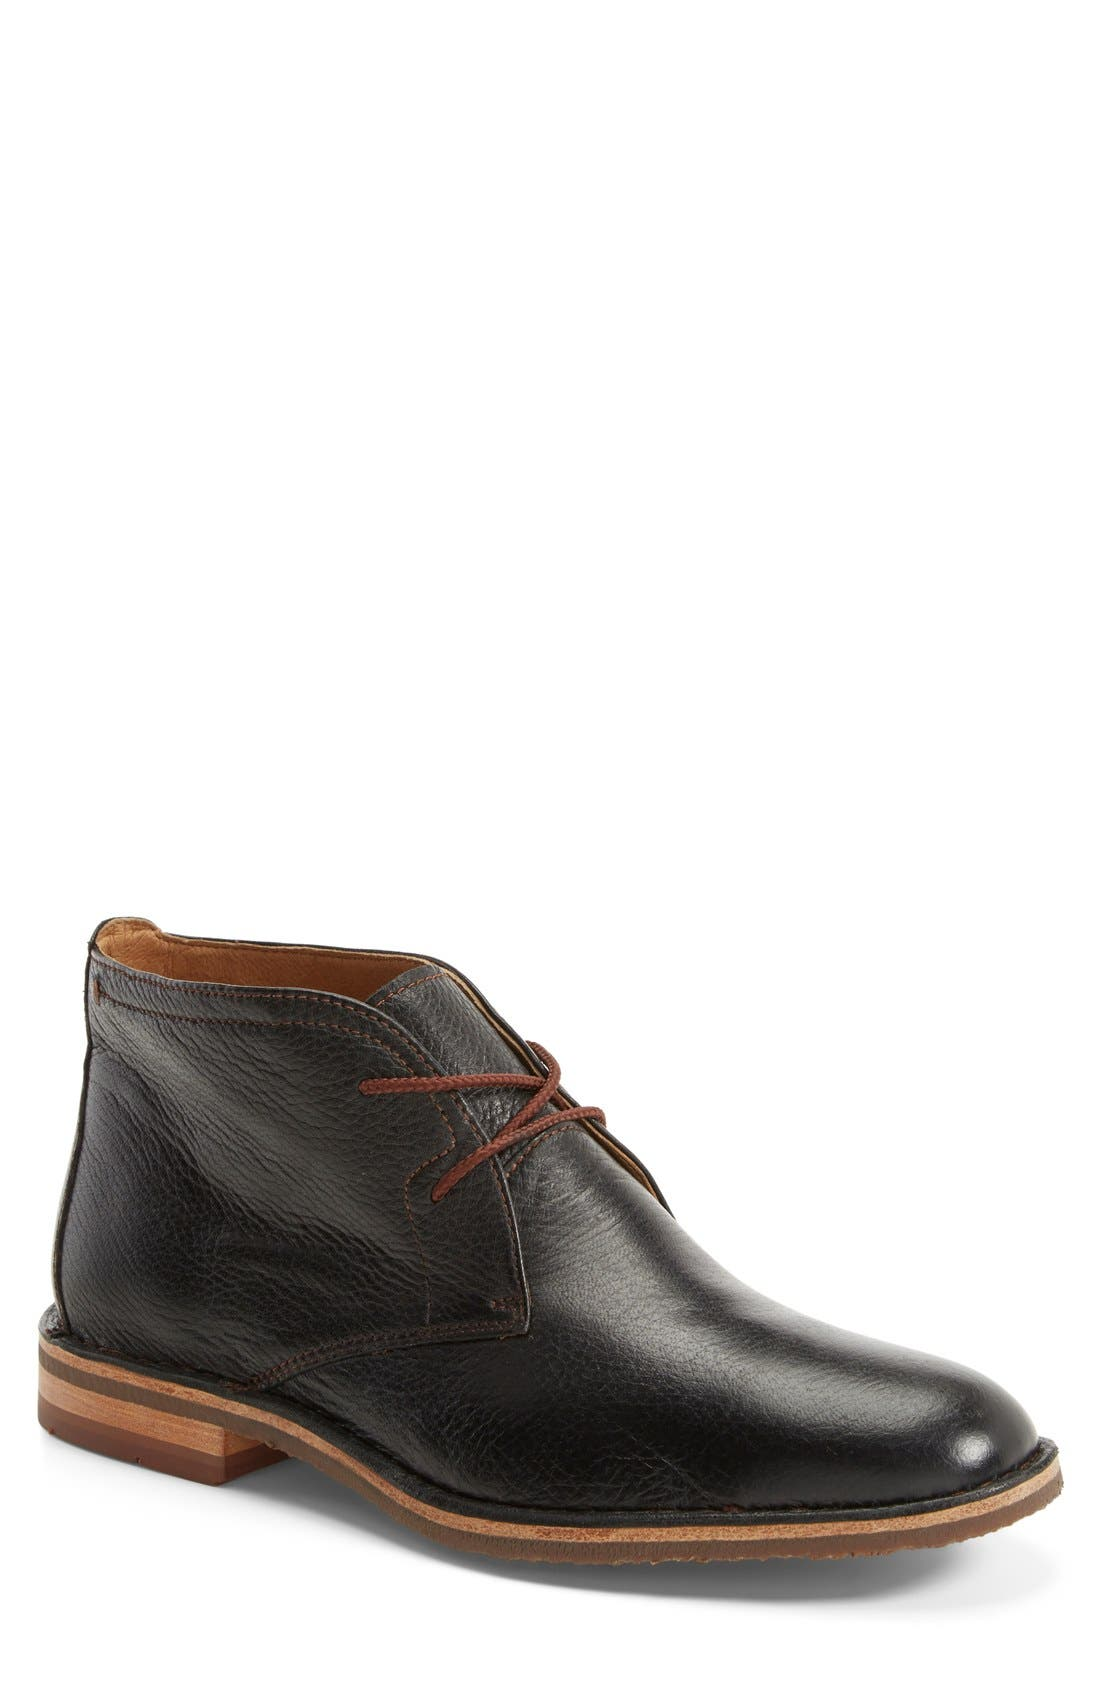 TRASK 'Brady' Chukka Boot, Main, color, BLACK NORWEGIAN ELK